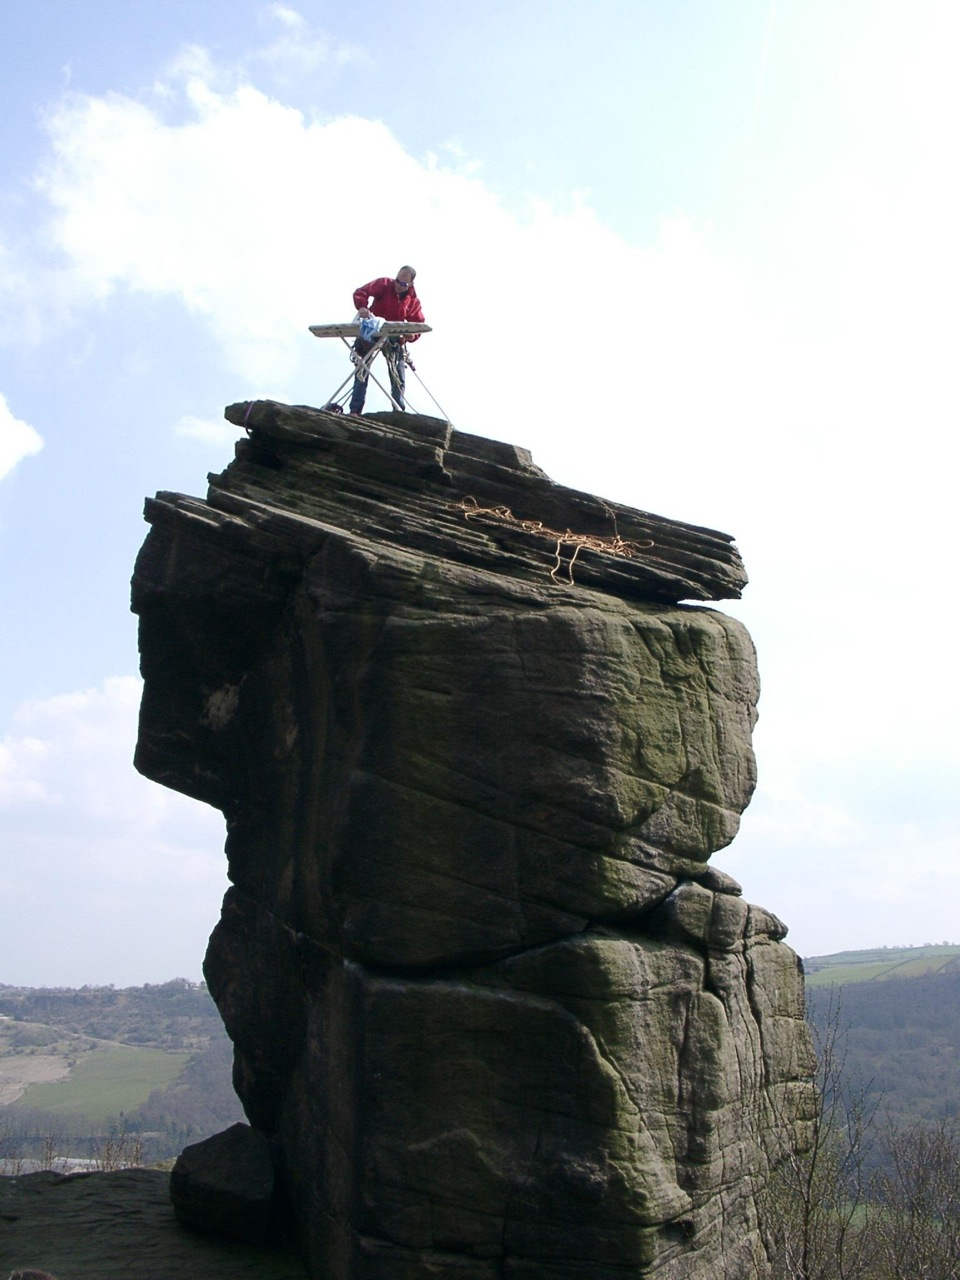 Starch Extreme Ironing on Rivelin Needle. Rivelin Rocks, United Kingdom